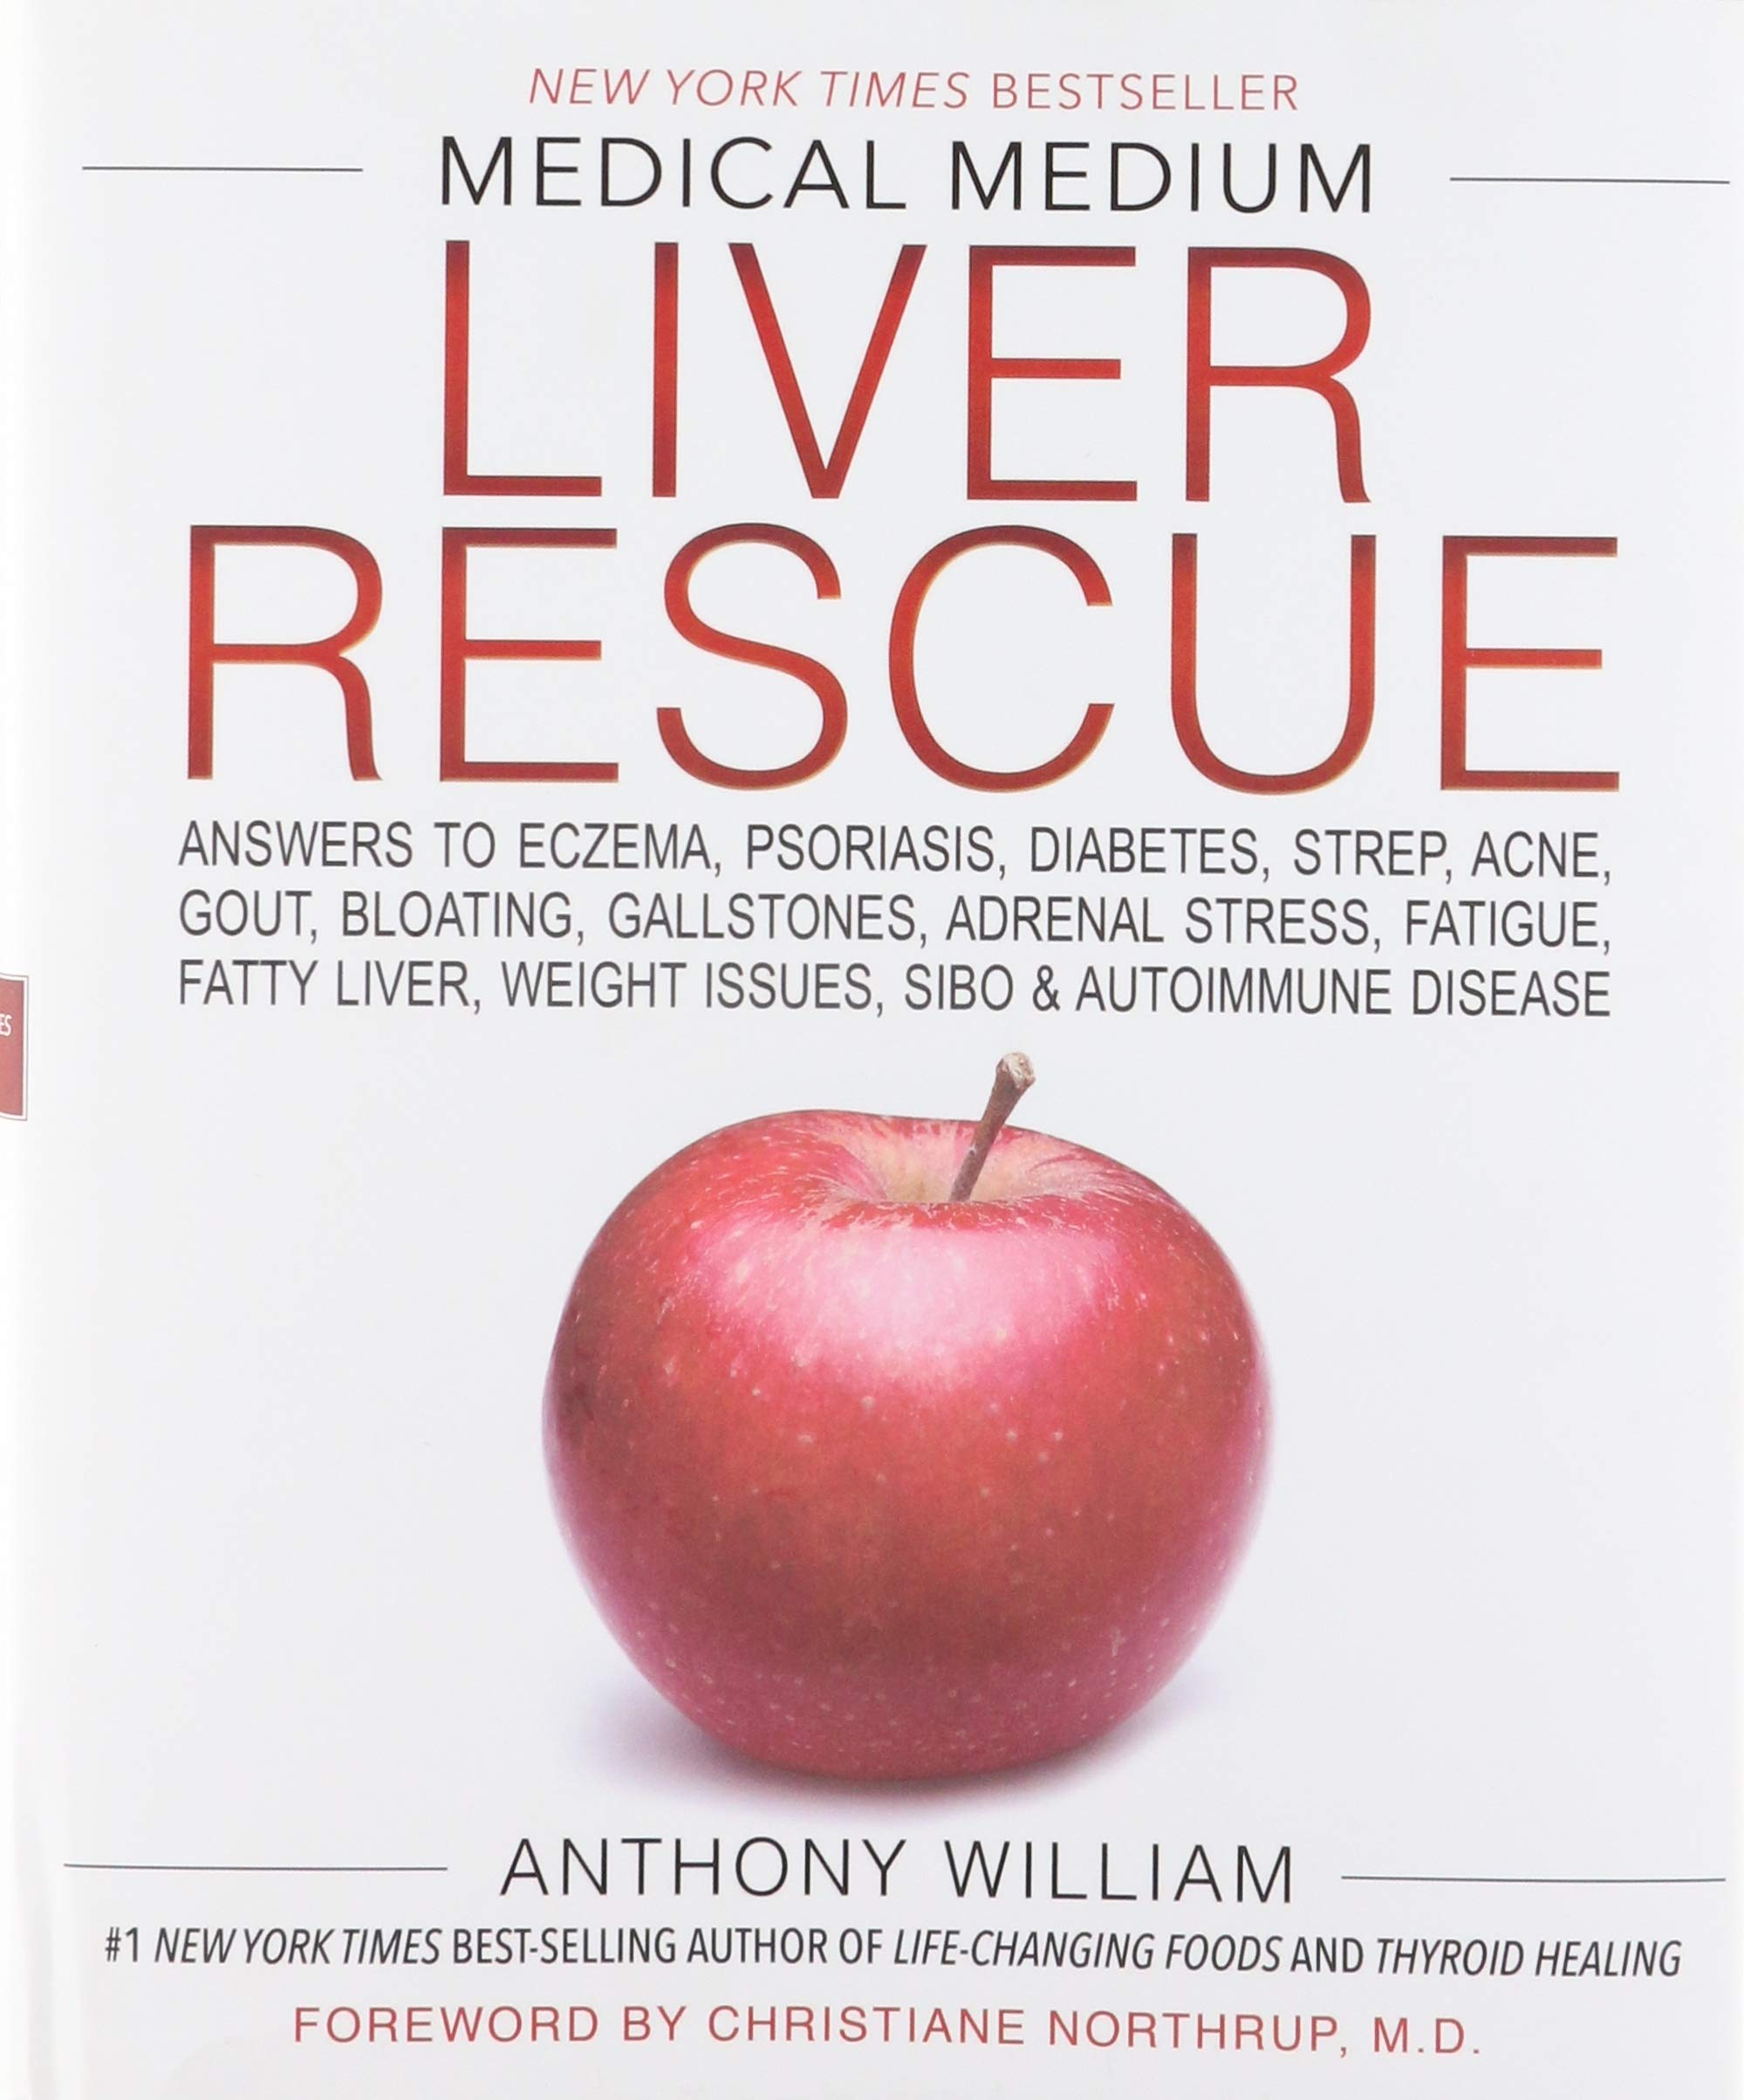 Medical Medium Liver Rescue: Answers to Eczema, Psoriasis, Diabetes, Strep, Acne, Gout, Bloating, Gallstones, Adrenal Stress, Fatigue, Fatty Liver, Weight Issues, SIBO & Autoimmune Disease by Hay House Inc.